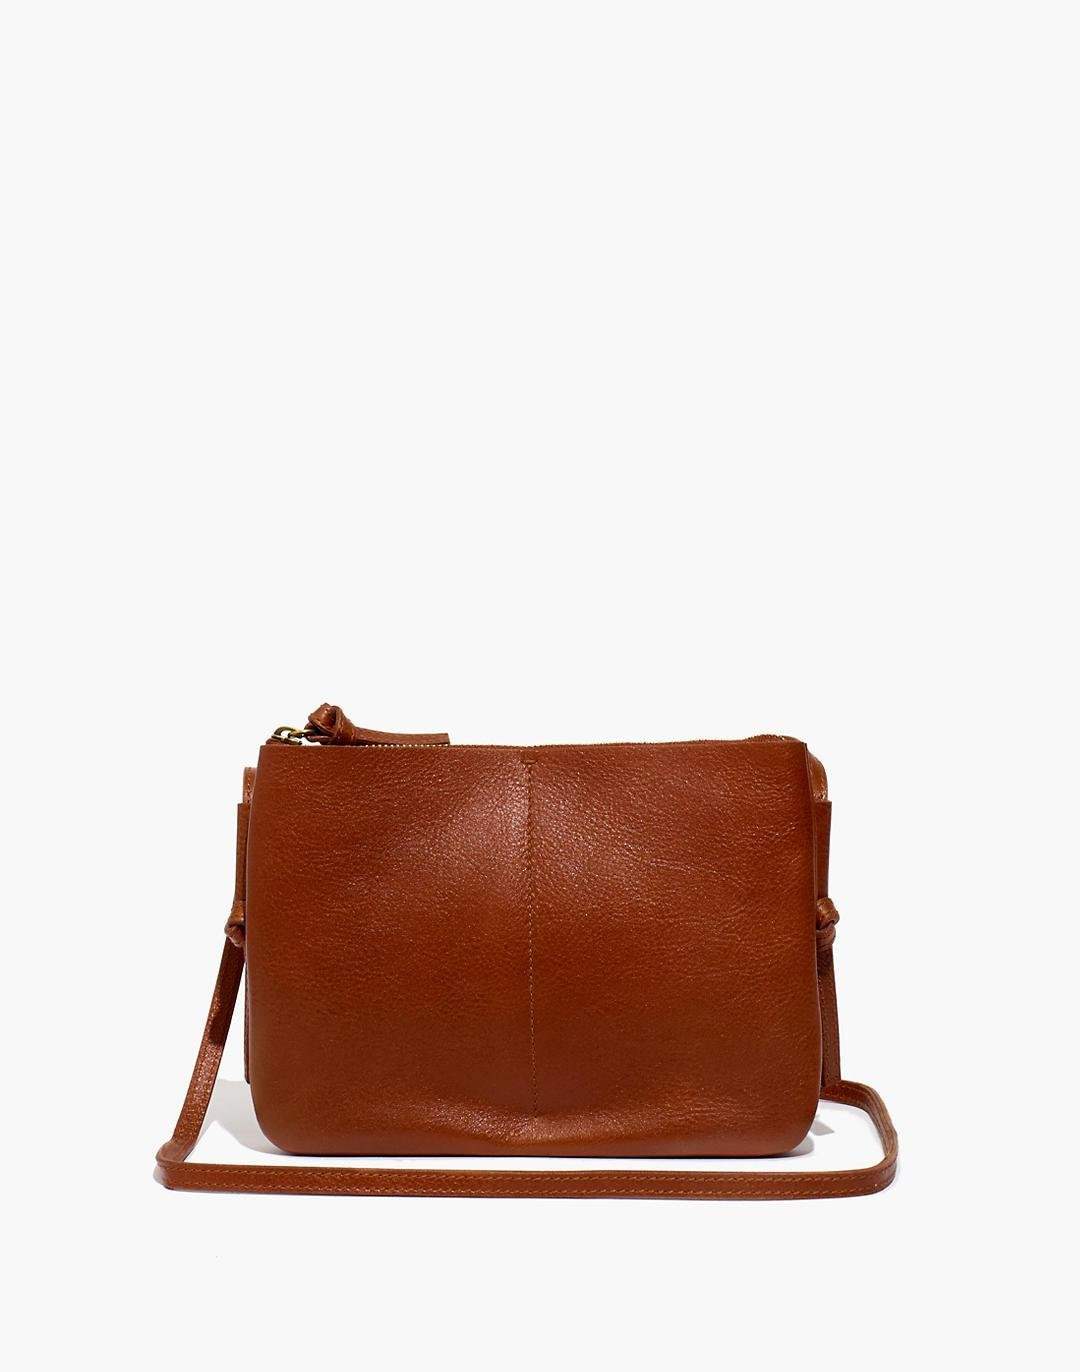 The Knotted Crossbody Bag